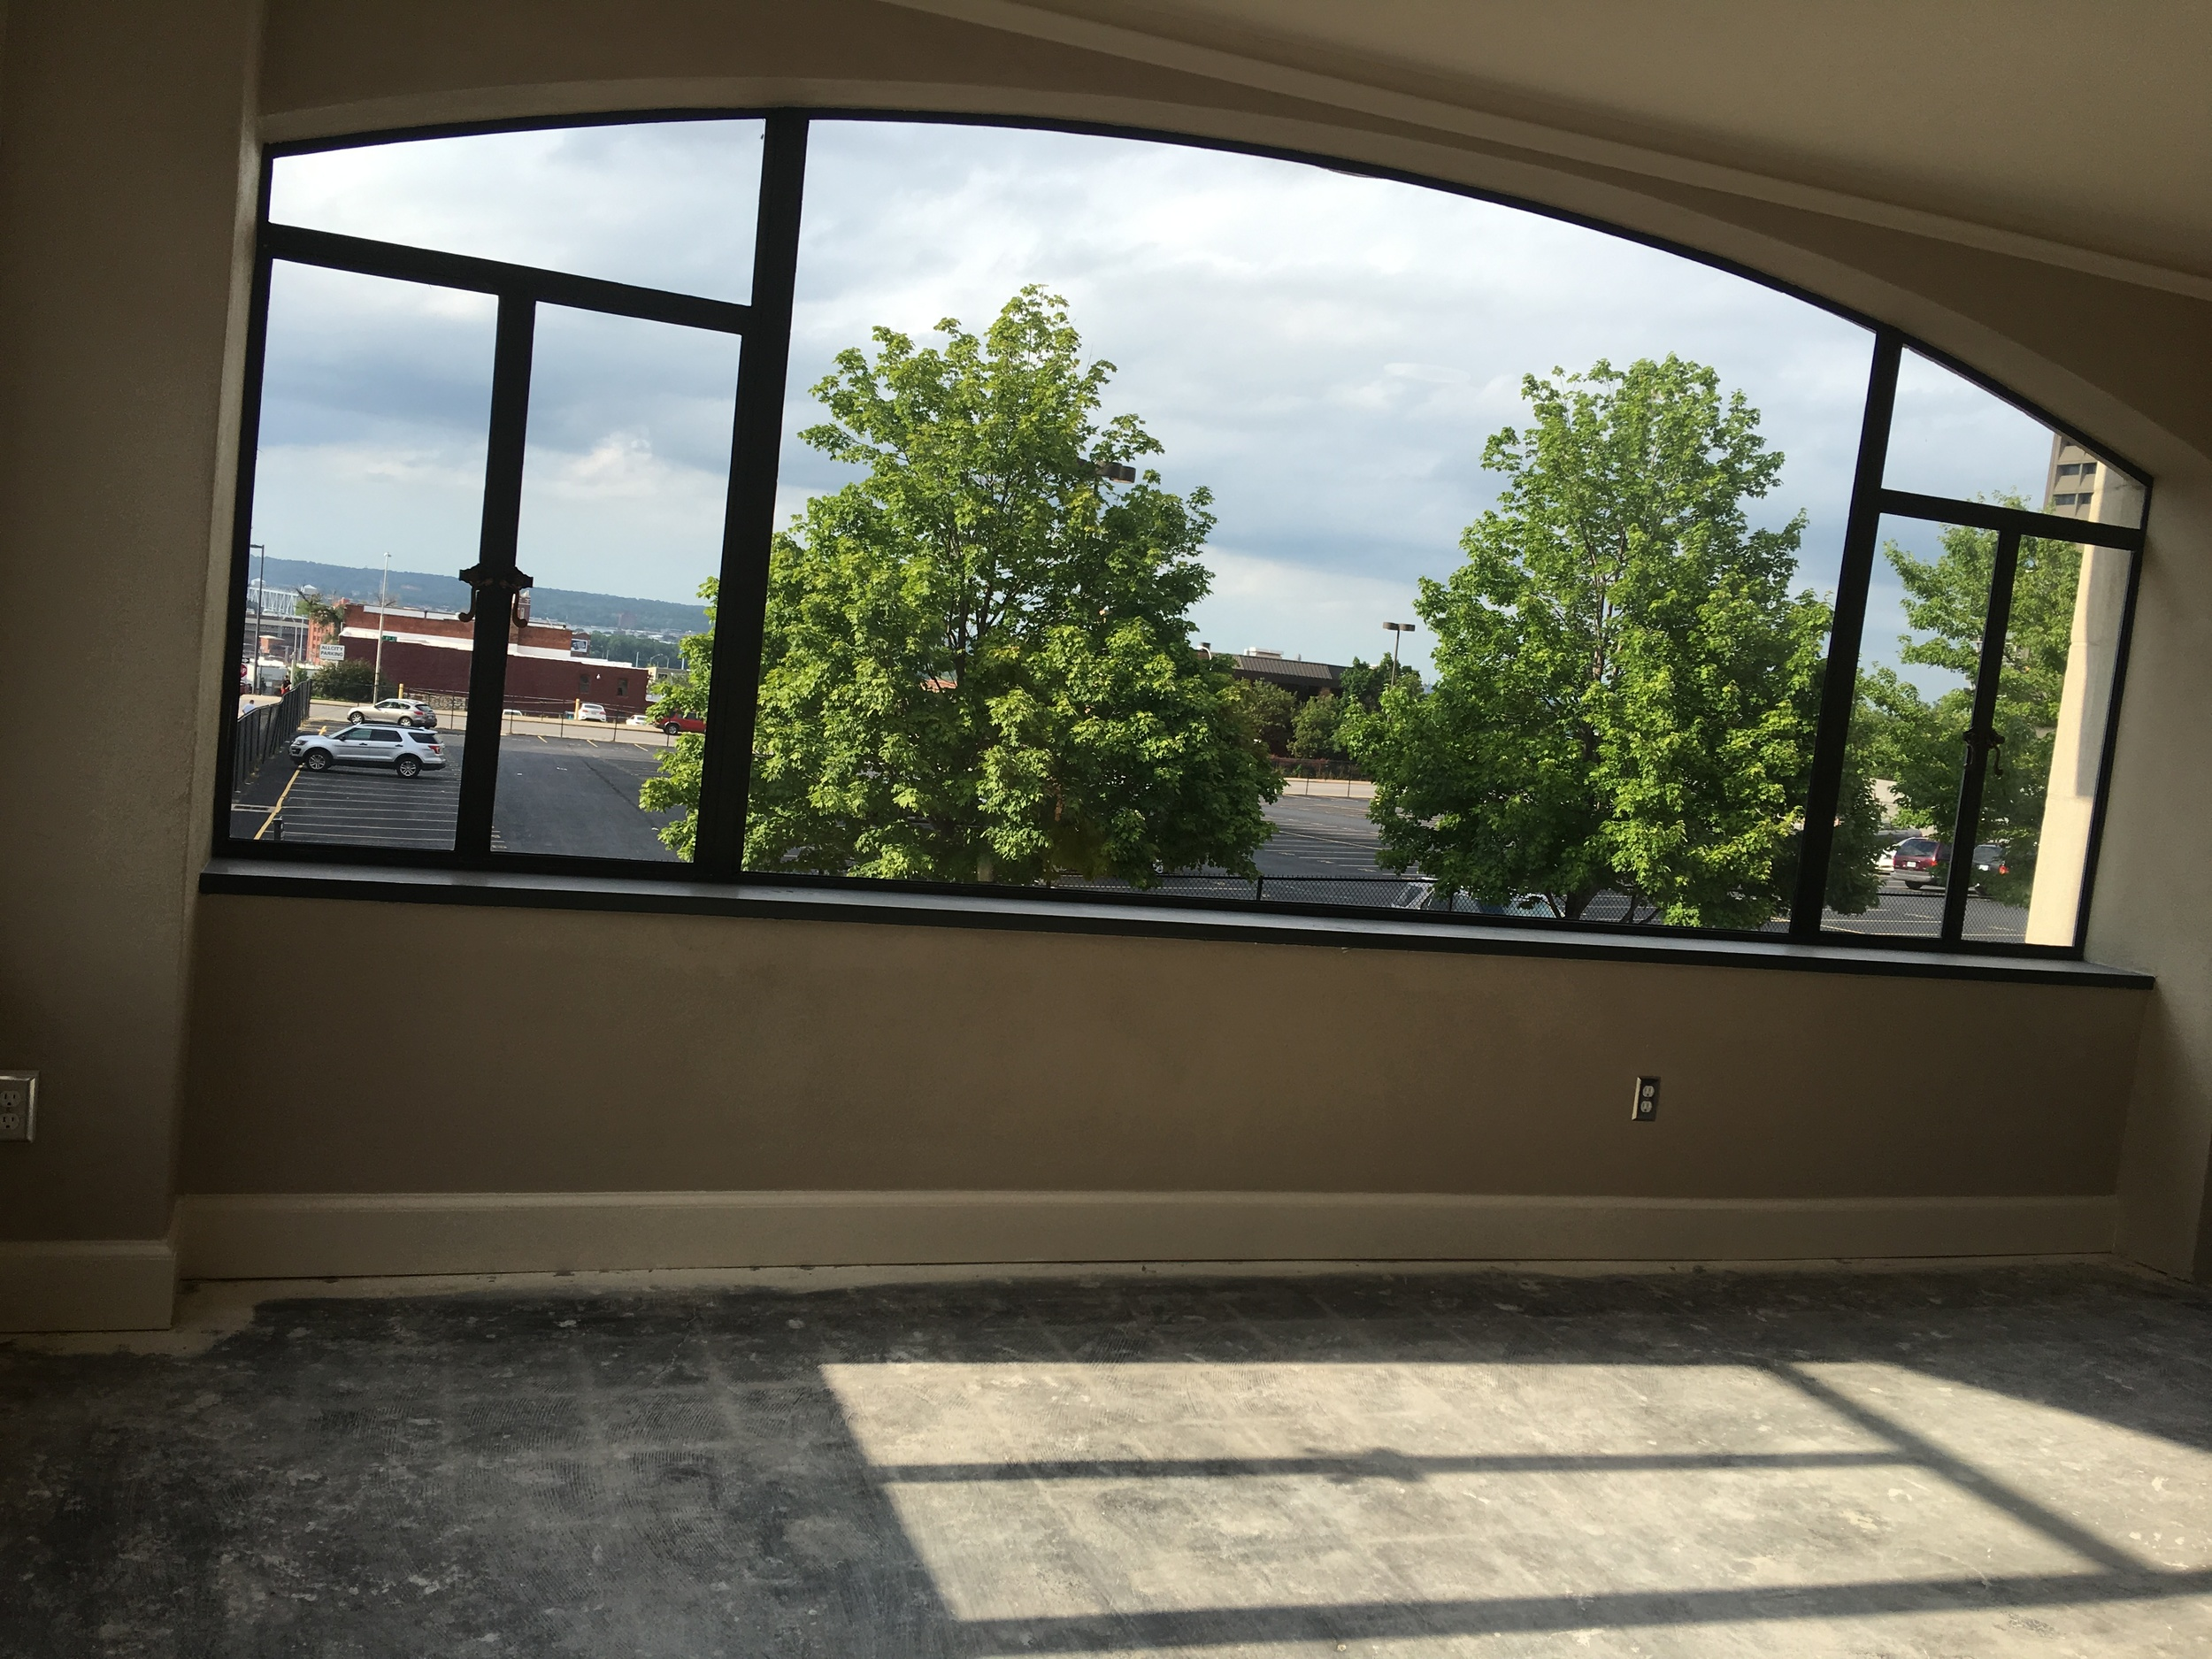 Units at the Pickwick are starting to take shape. Large windows provide stunning views of downtown.